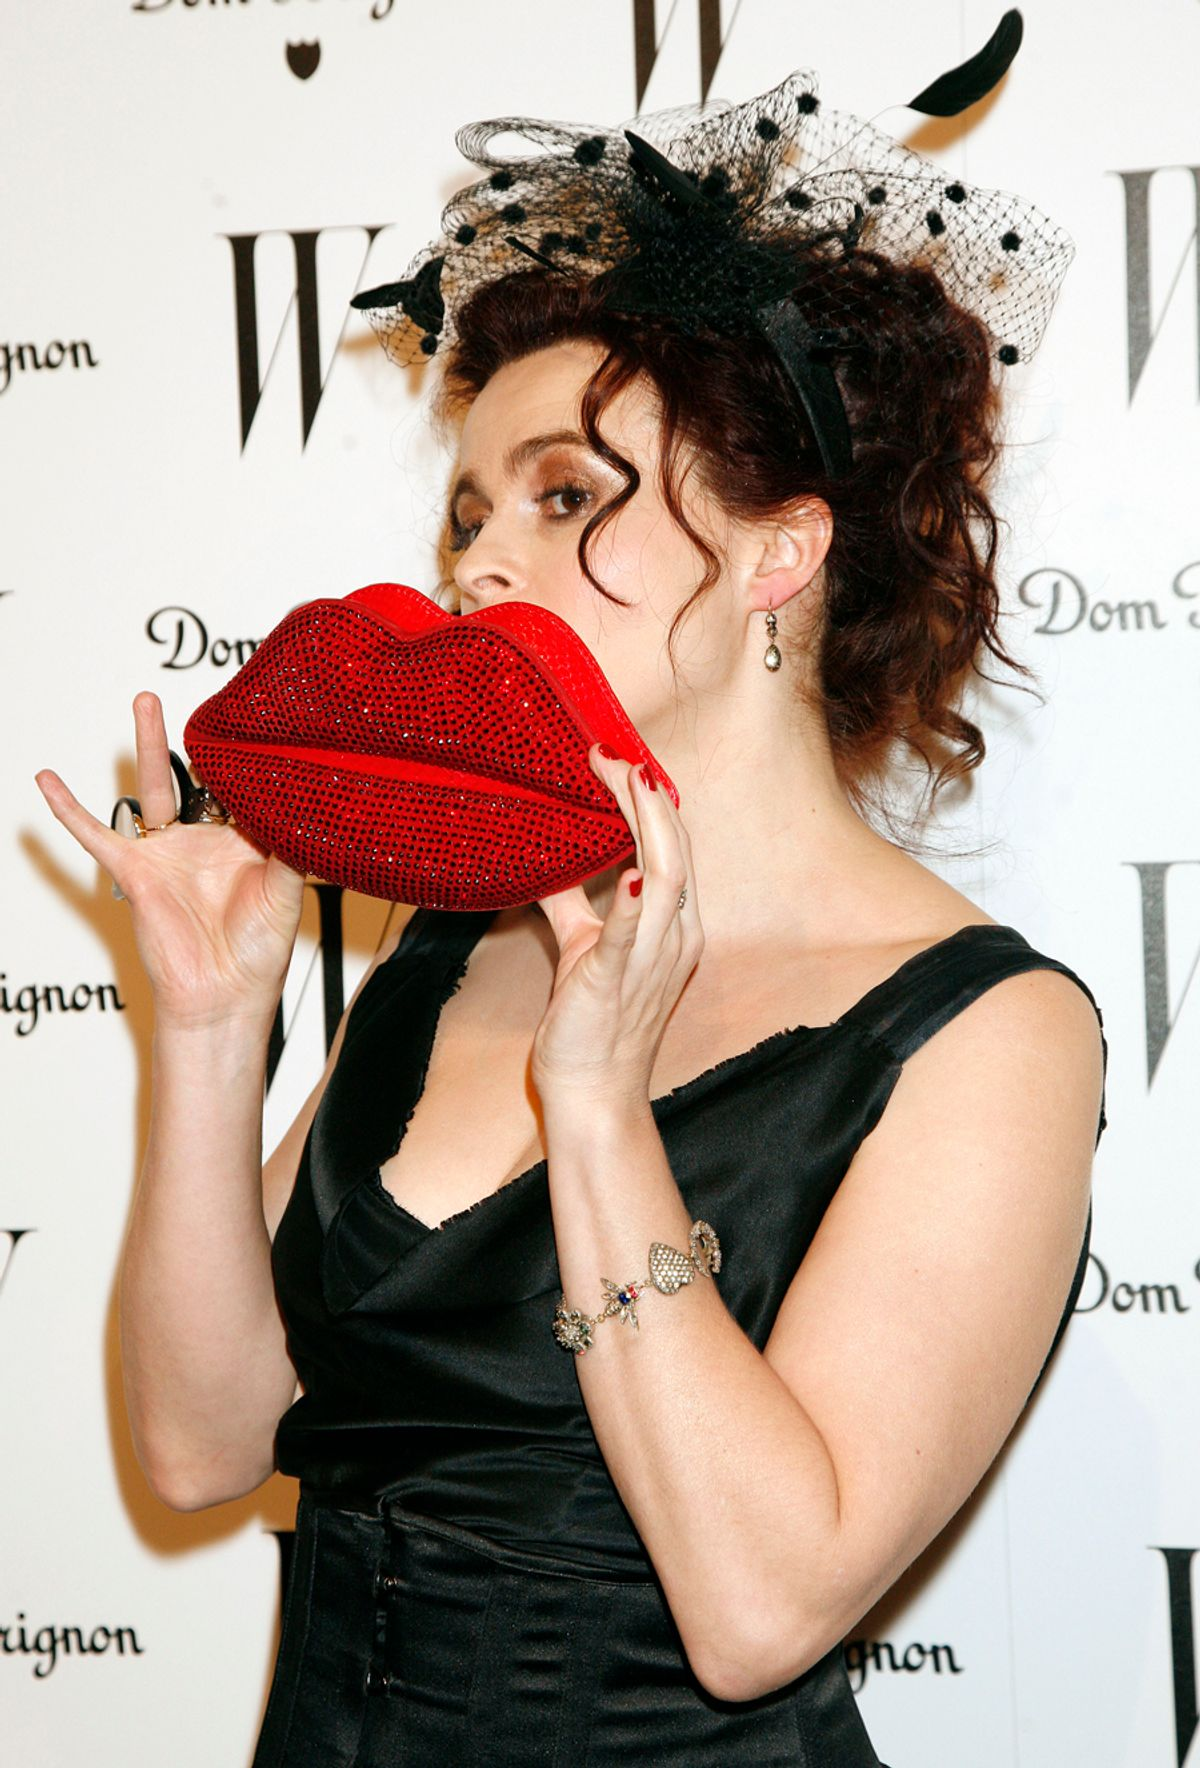 Actress Helena Bonham Carter arrives as W Magazine Celebrates The Best Performances Issue and The Golden Globes at Chateau Marmont in West Hollywood, Calif., Friday., Jan. 14, 2011. (AP Photo/Jason Redmond) (Jason Redmond)